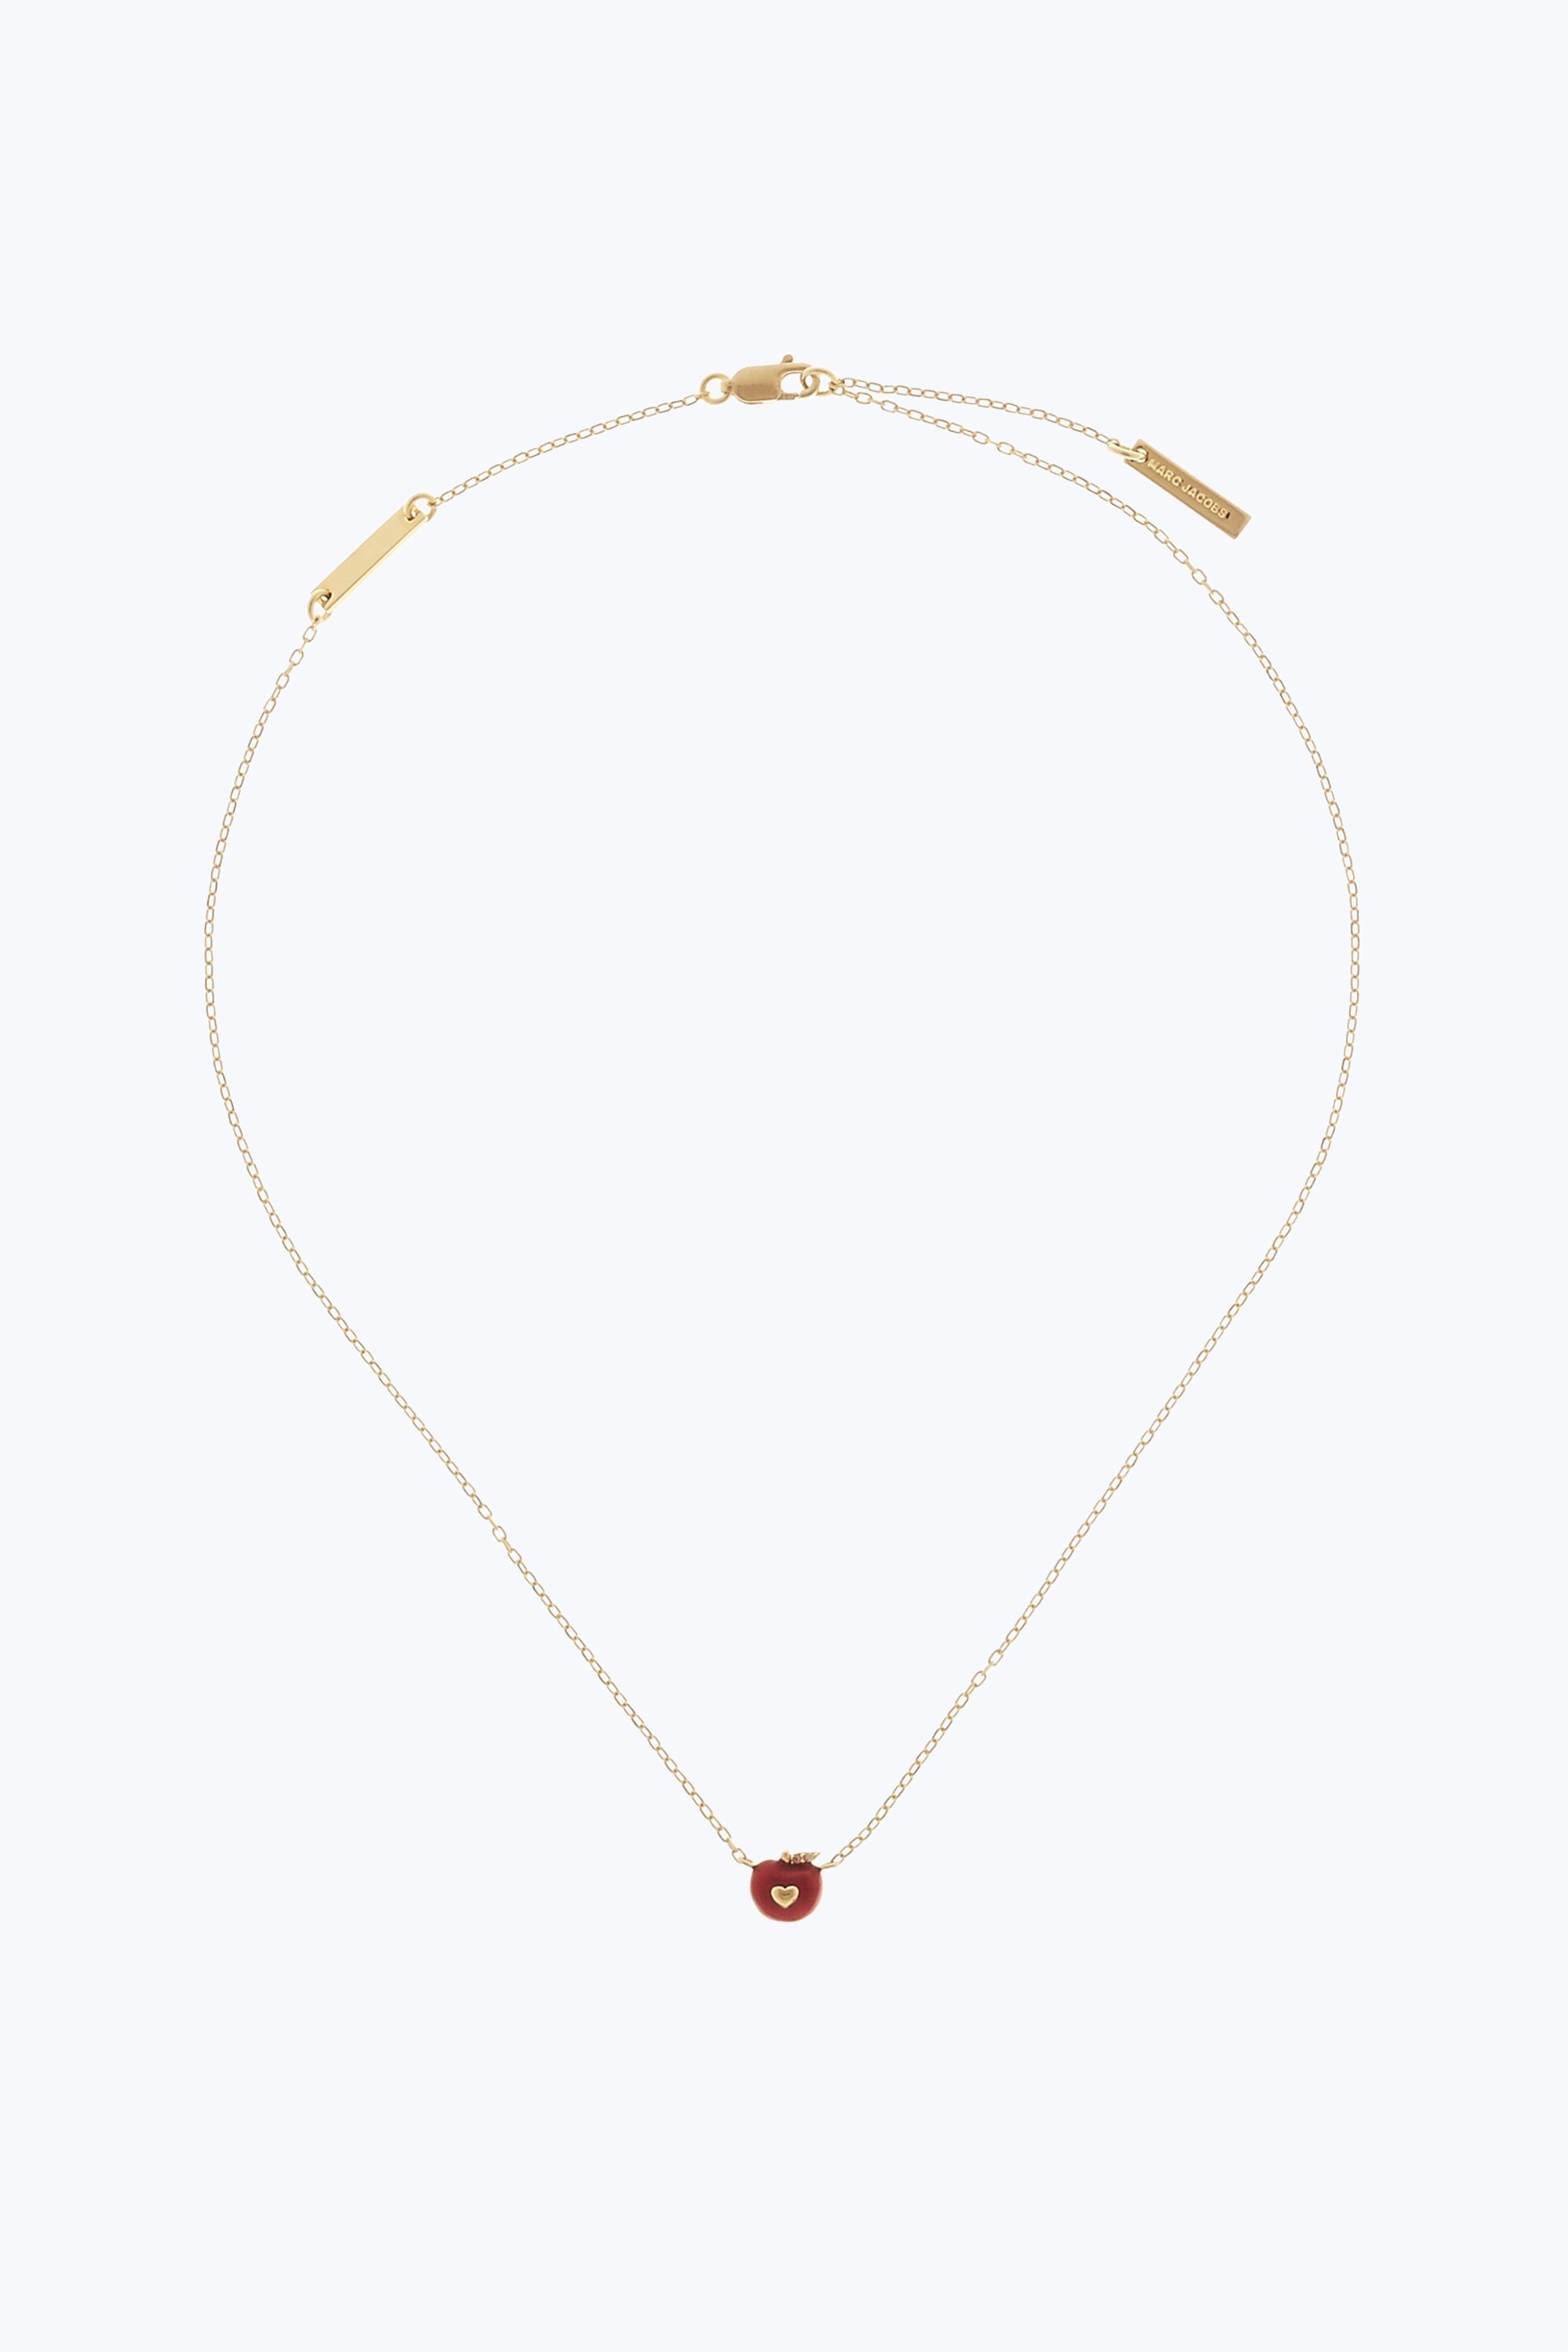 Necklaces, Gold, Stainless Steel, 2017, One Size Marc Jacobs